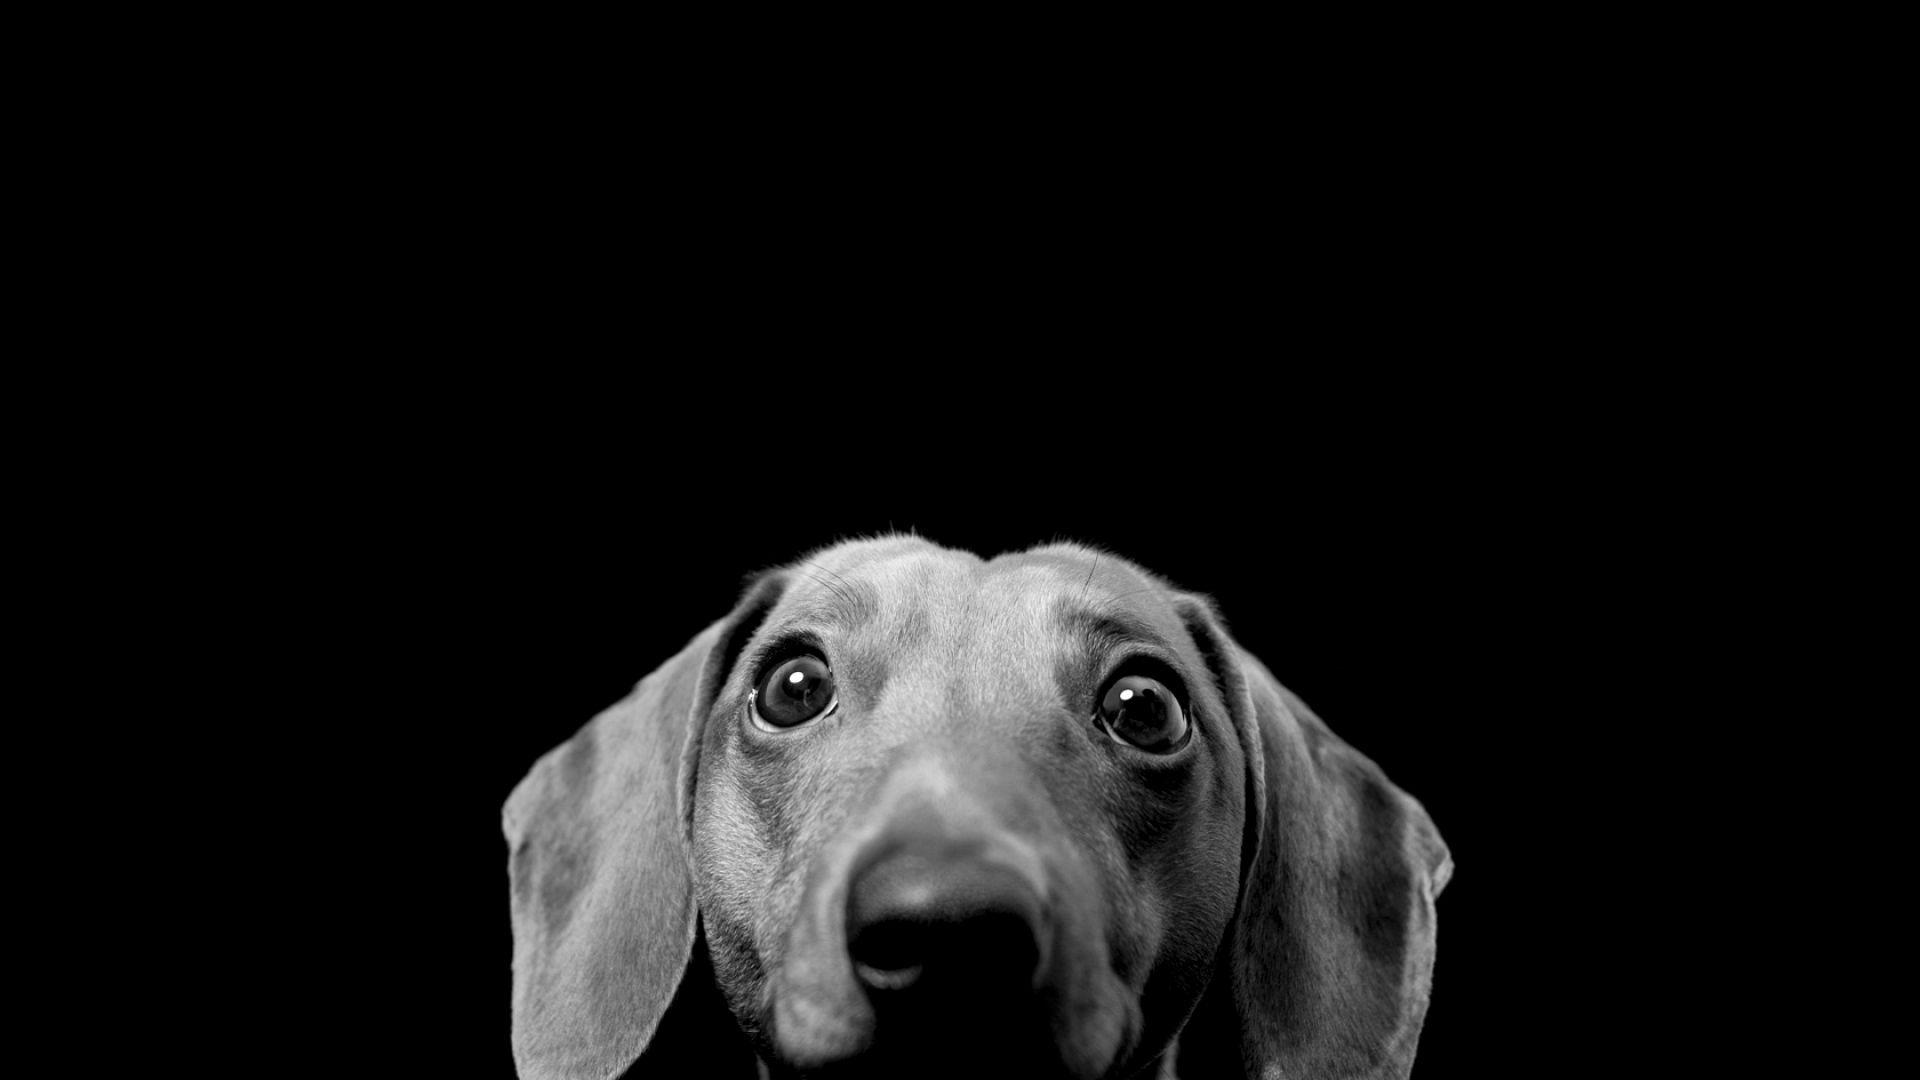 Get The Latest Dog Black Gray News Pictures And Videos Learn All About From Wallpapers4uorg Your Wallpaper Source